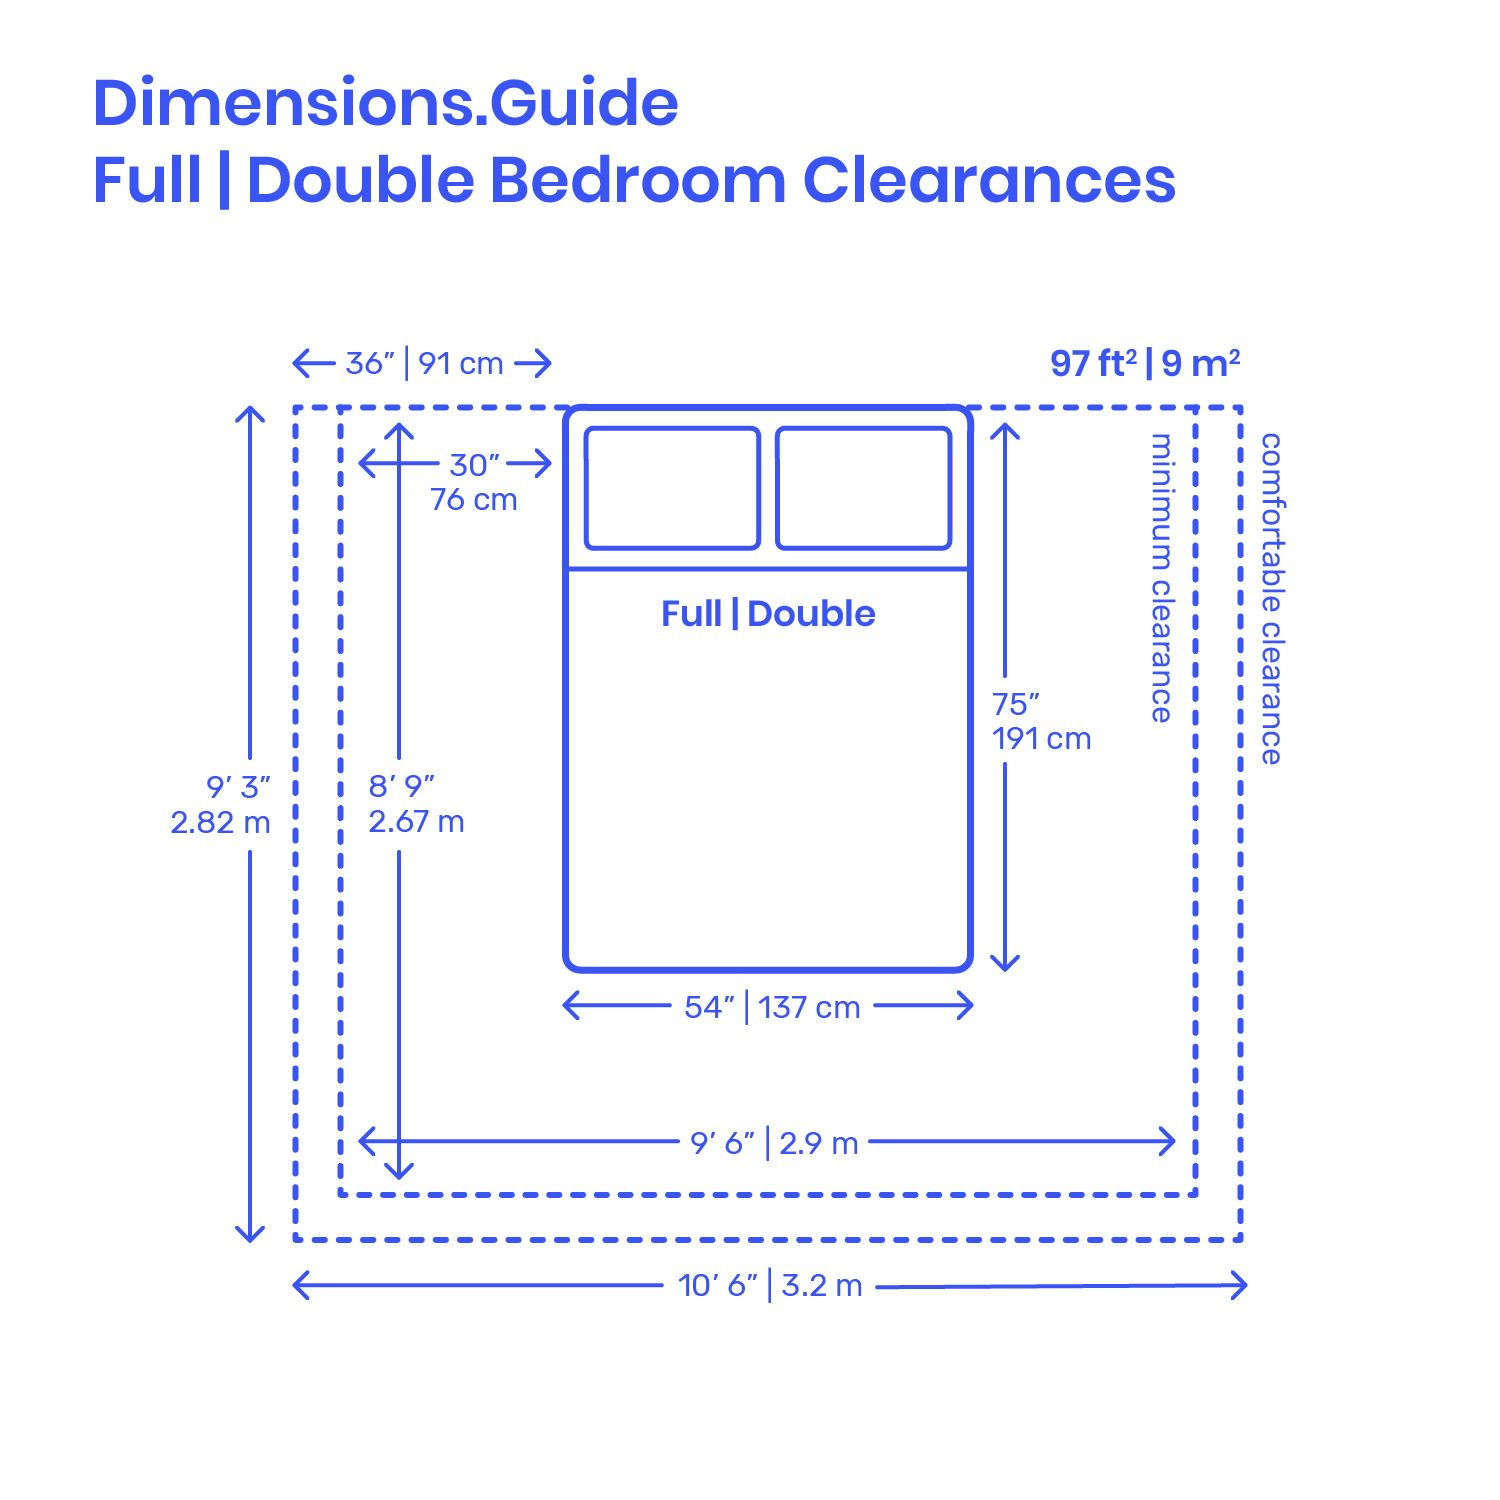 Full Size Double Bedroom Layouts Are Recommended Floor Plans For Bedrooms Based On The Dimensions Of Bedroom Layouts Master Bedroom Layout Bedroom Dimensions